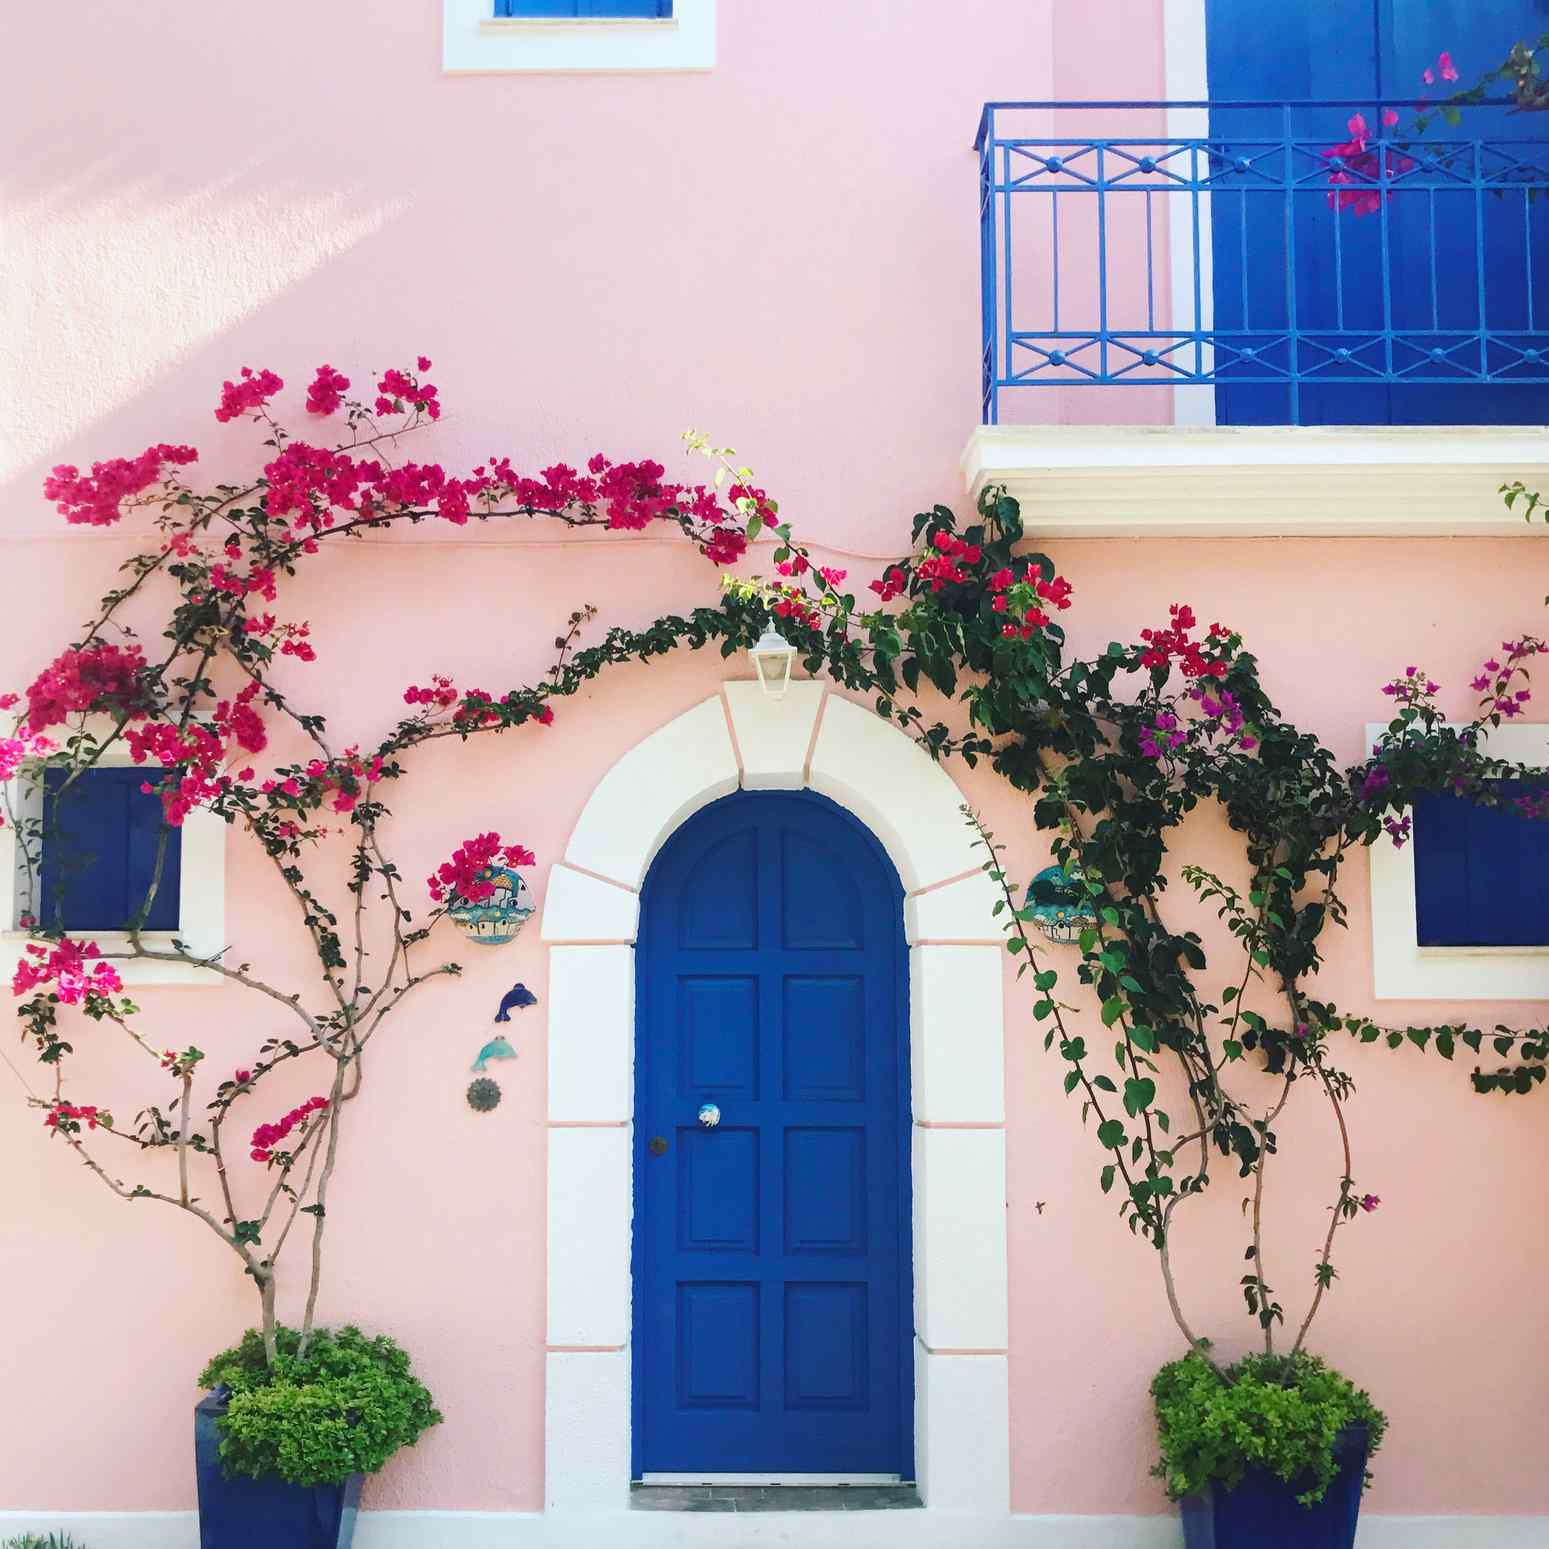 A pink house with a blue door in Greece